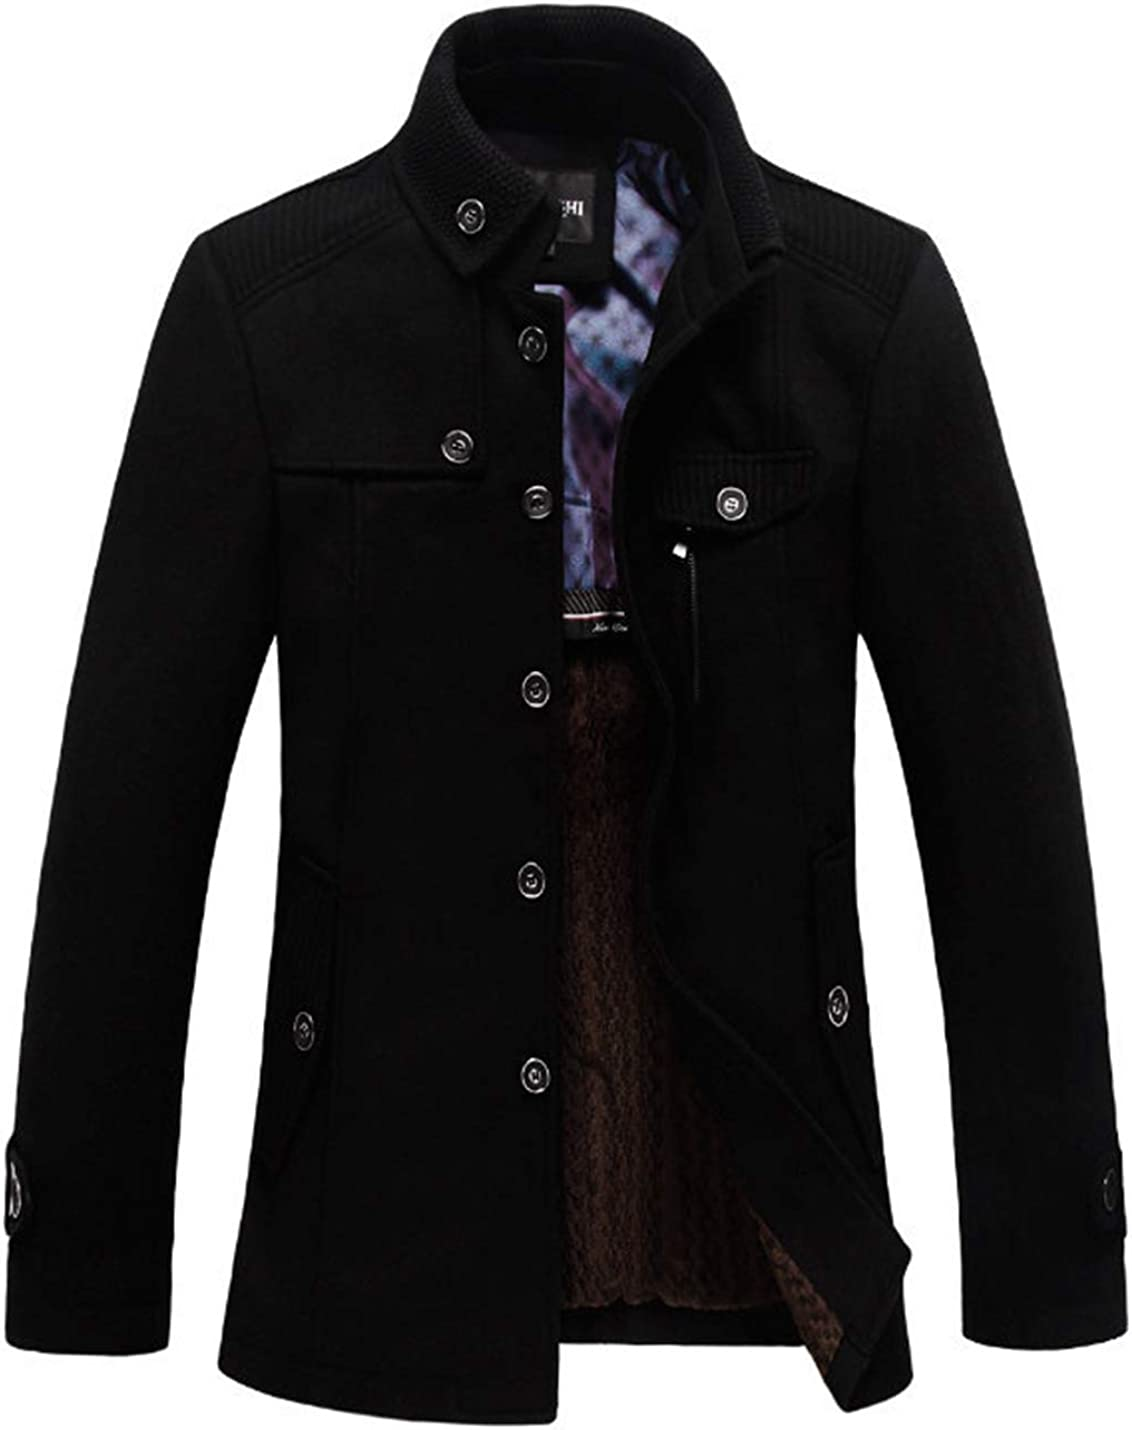 Yimoon Men's Stand Collar Wool Blend Single Breasted Trench Coat Fleece Lined Overcoat